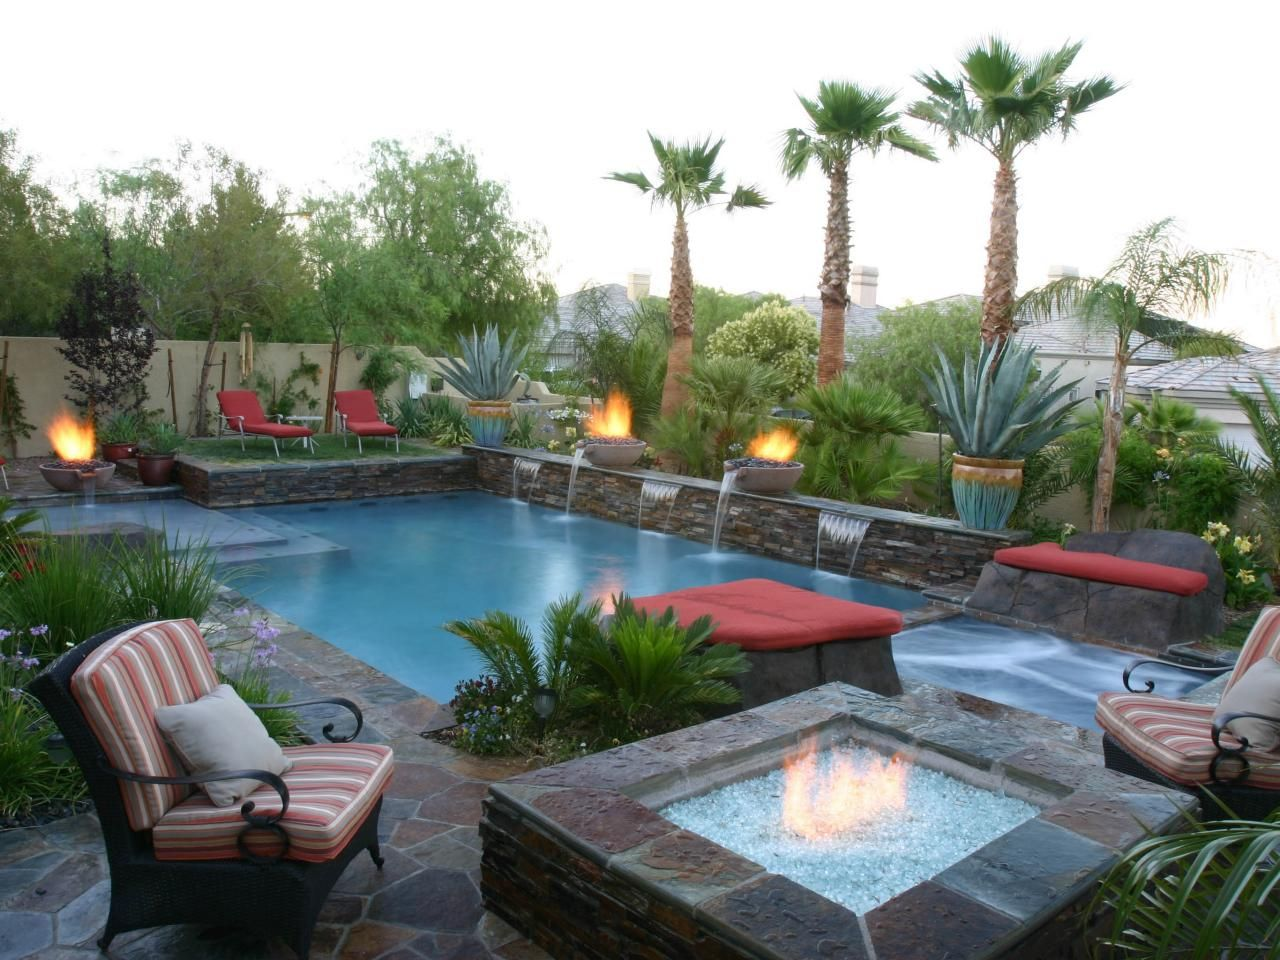 Pool And Patio Adheres To Feng Shui | HGTV